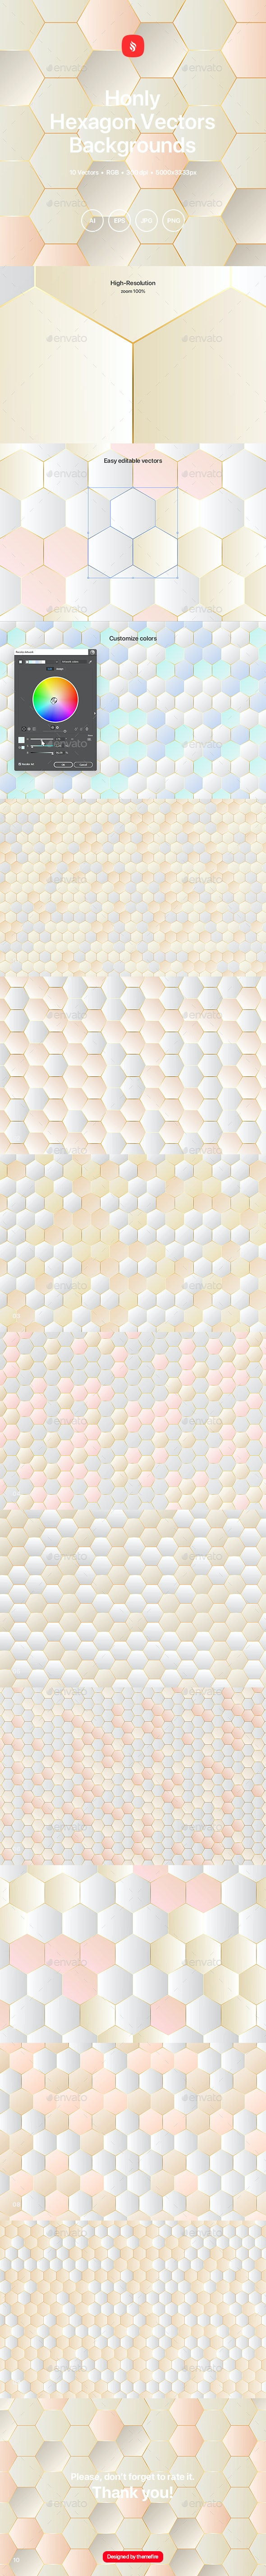 Honly - Hexagon Vector Backgrounds - Patterns Backgrounds